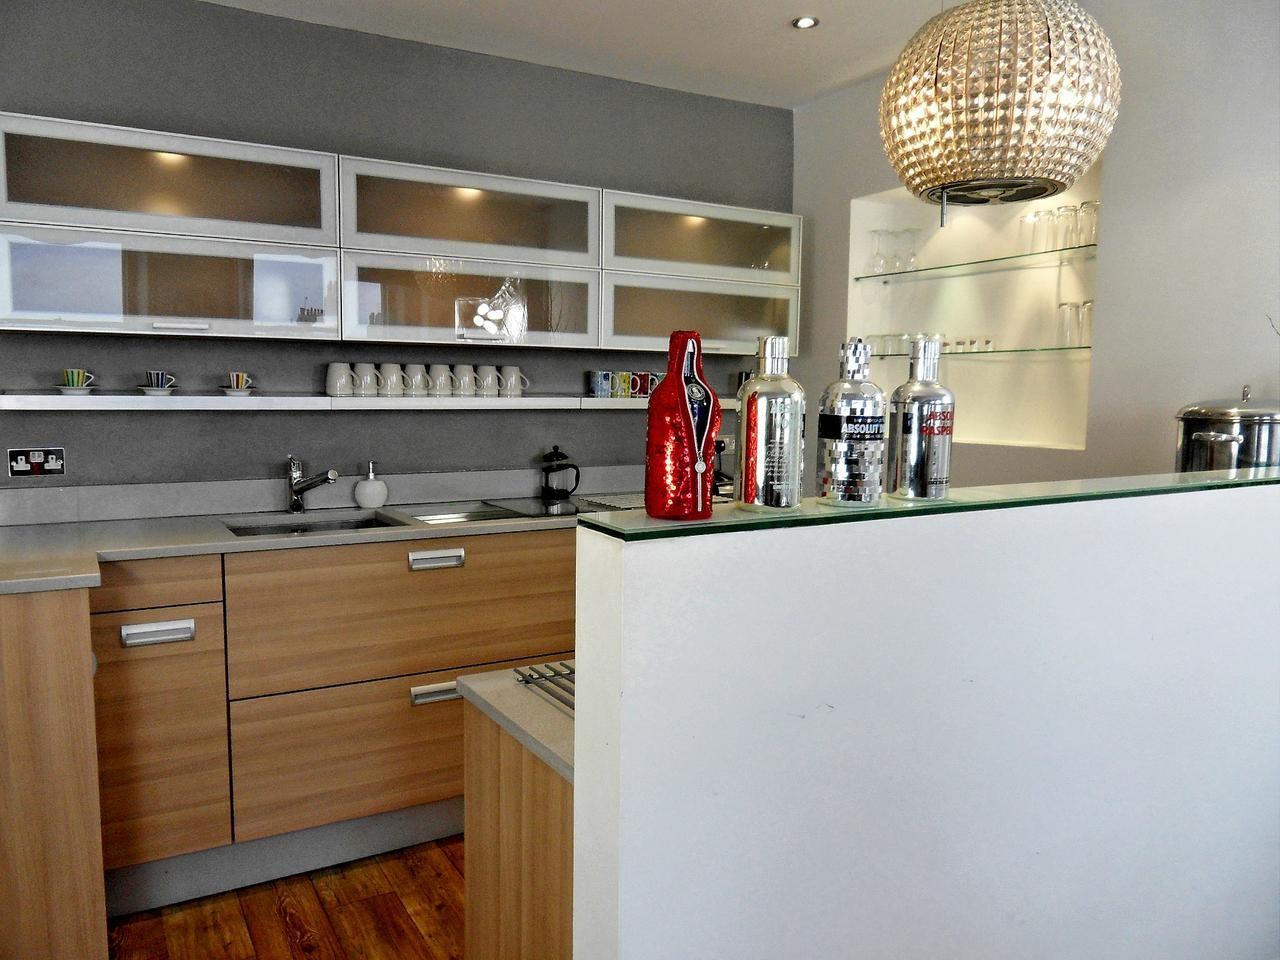 Chesham Penthouse, Brighton & Hove Images - 6